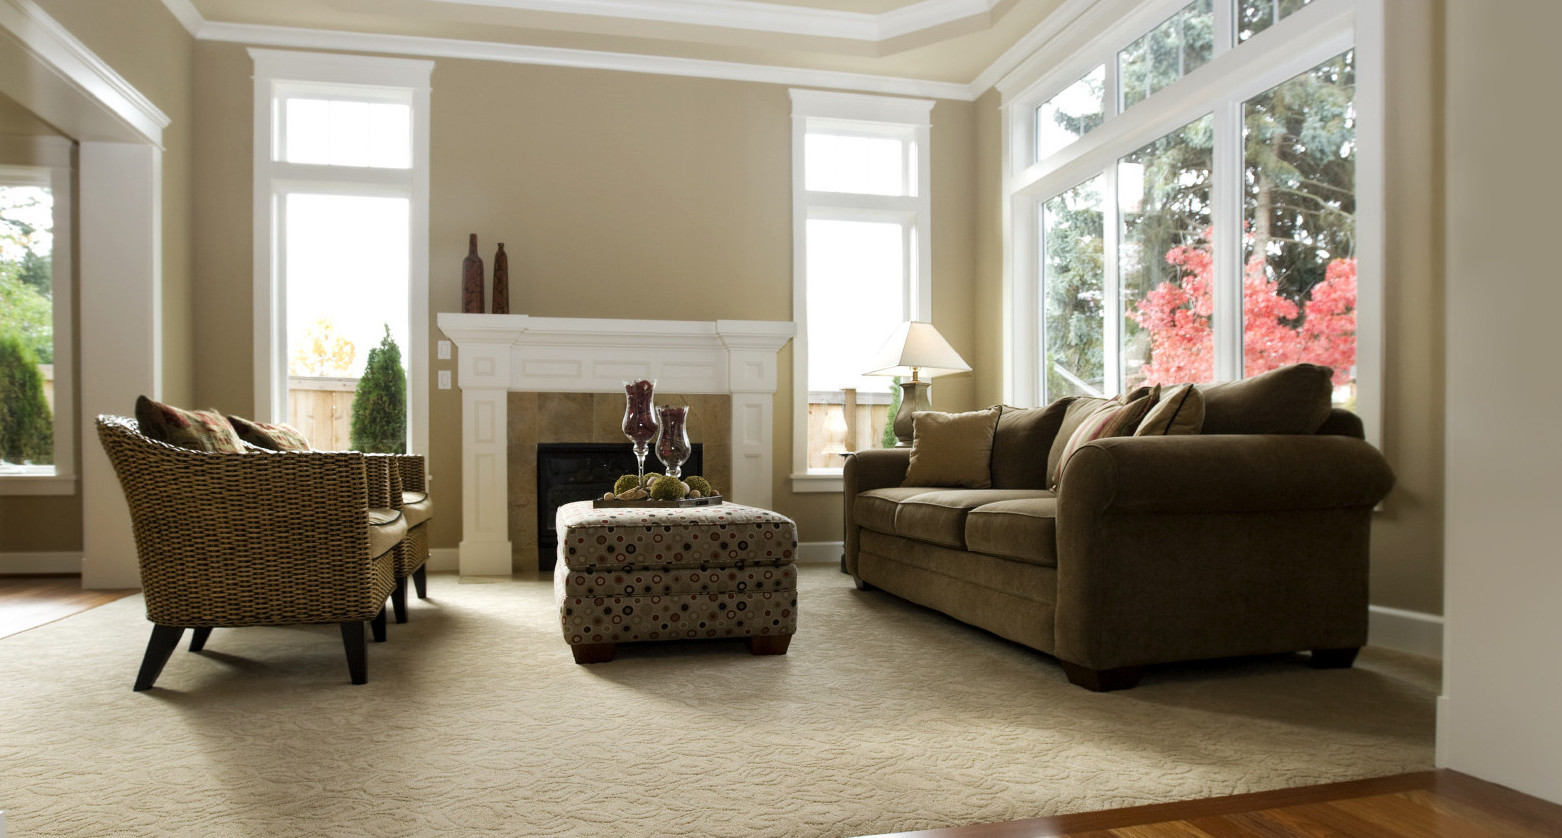 carpet cleaning Carpet Savvy Bakersfield Carpet Tile Upholstery Cleaning